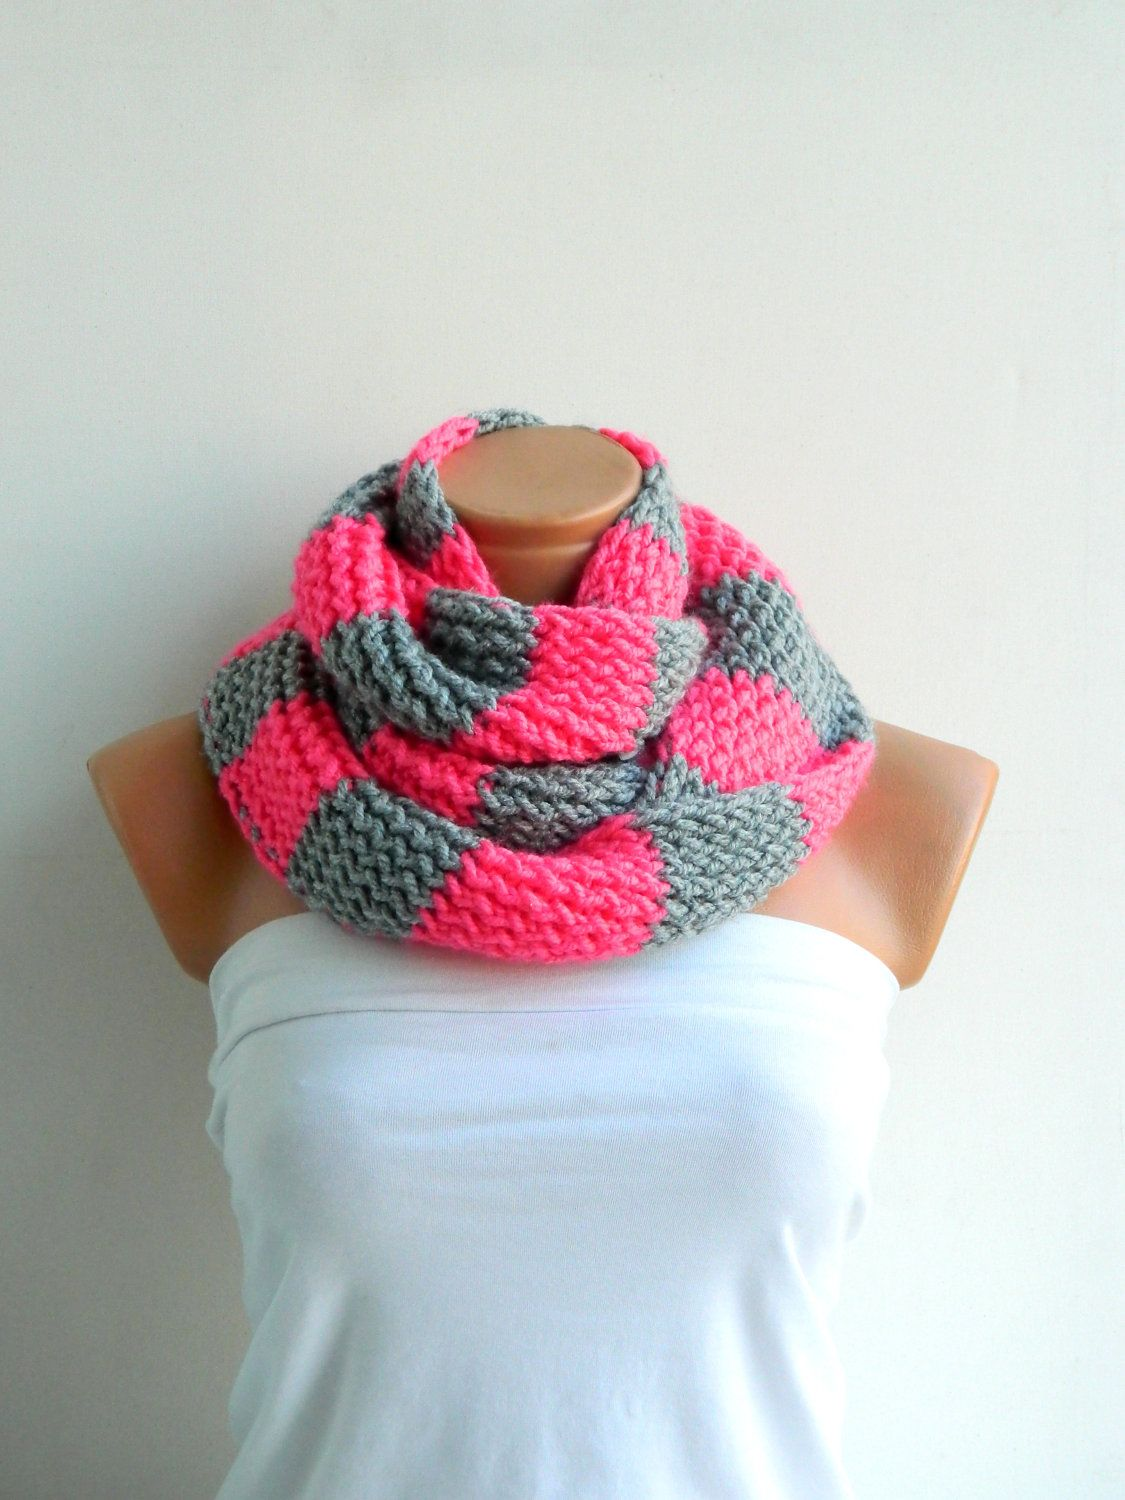 candy pink infinity scarf.Hand Knit Striped Gray and Pink Hand knitt ...